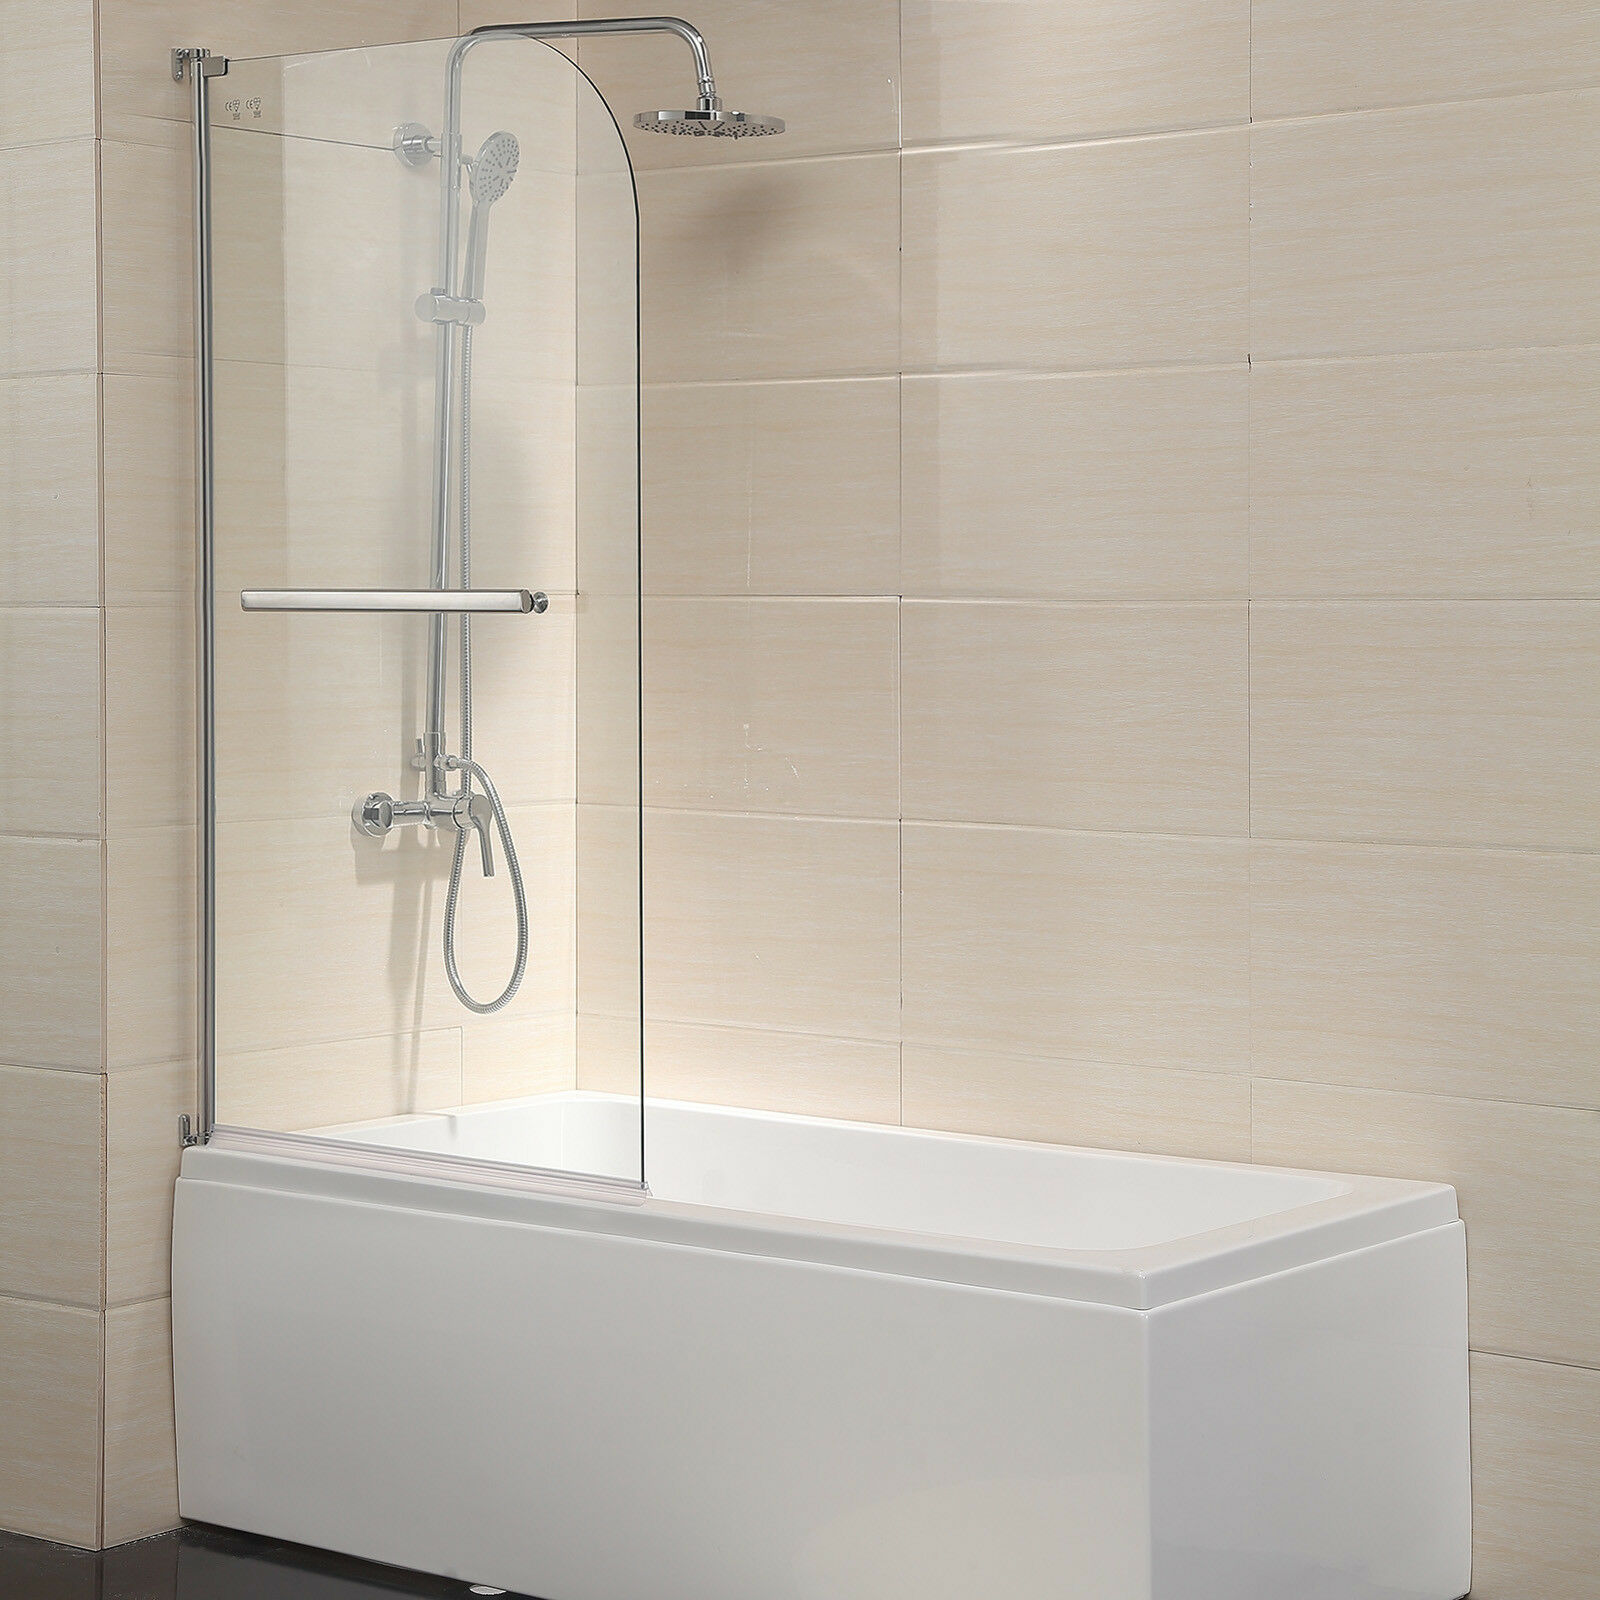 55 X31 Bathtub Shower Door Frameless 1 4 Clear Glass Chrome Finish